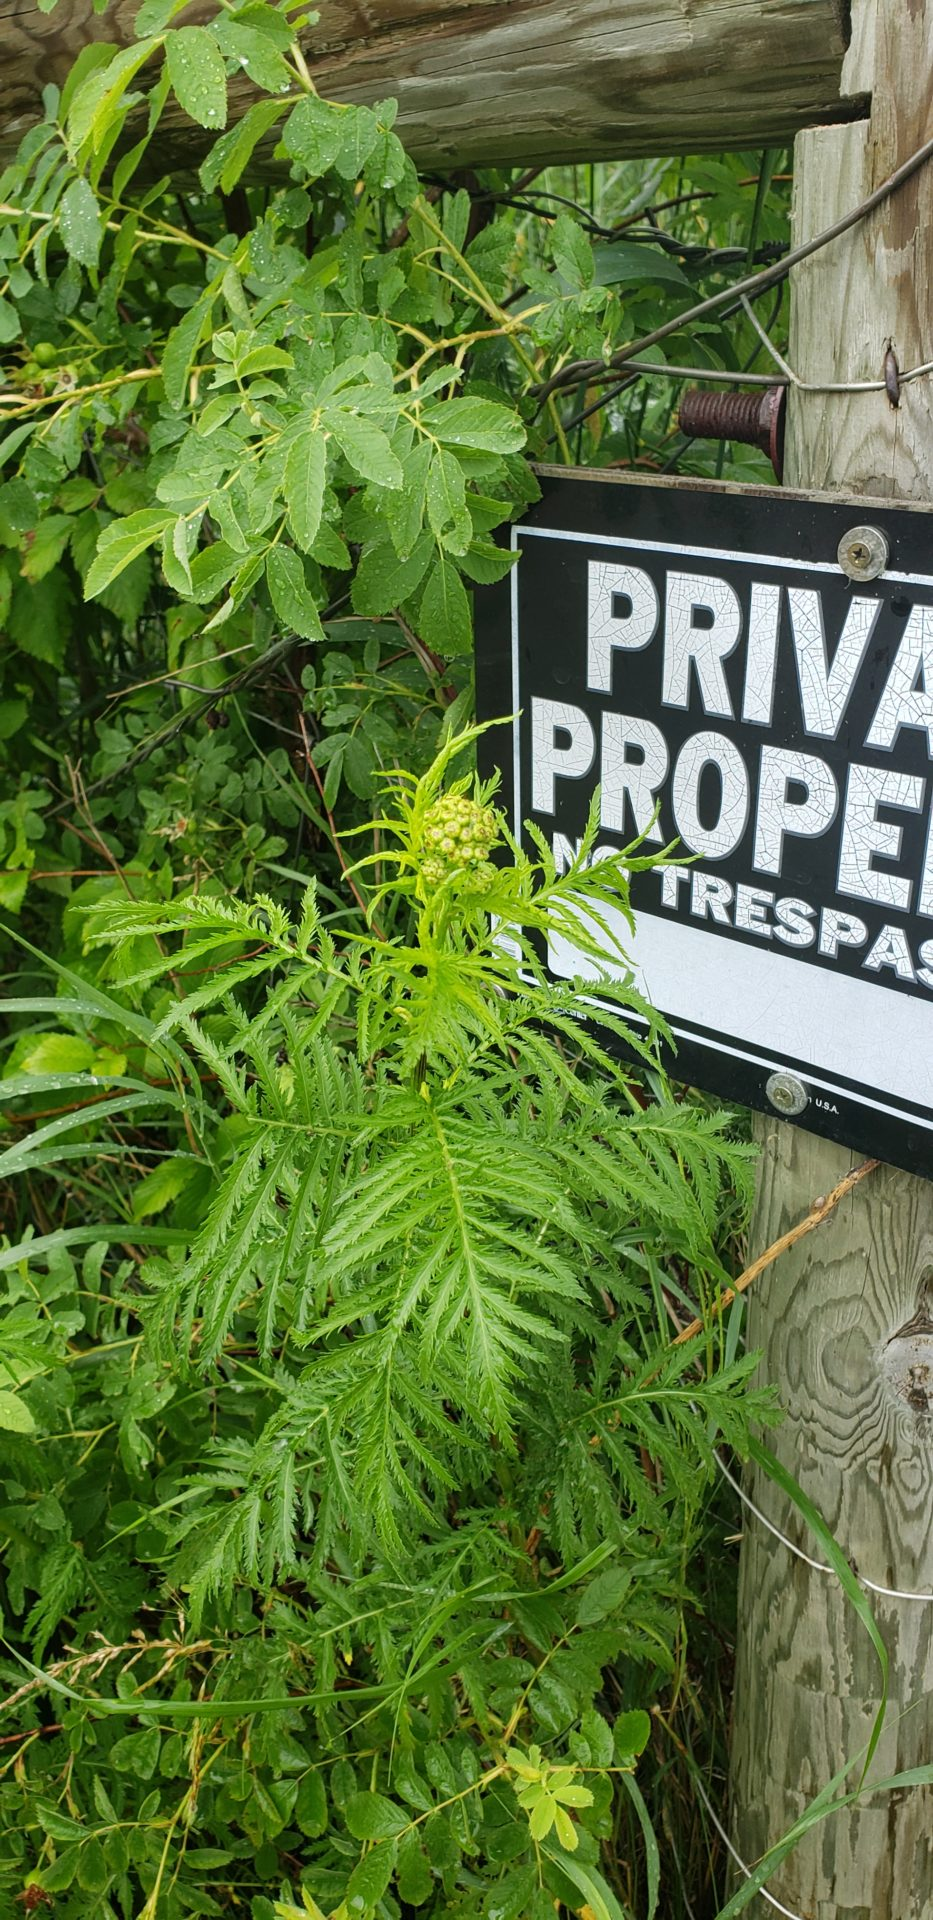 Plant next to private property sign